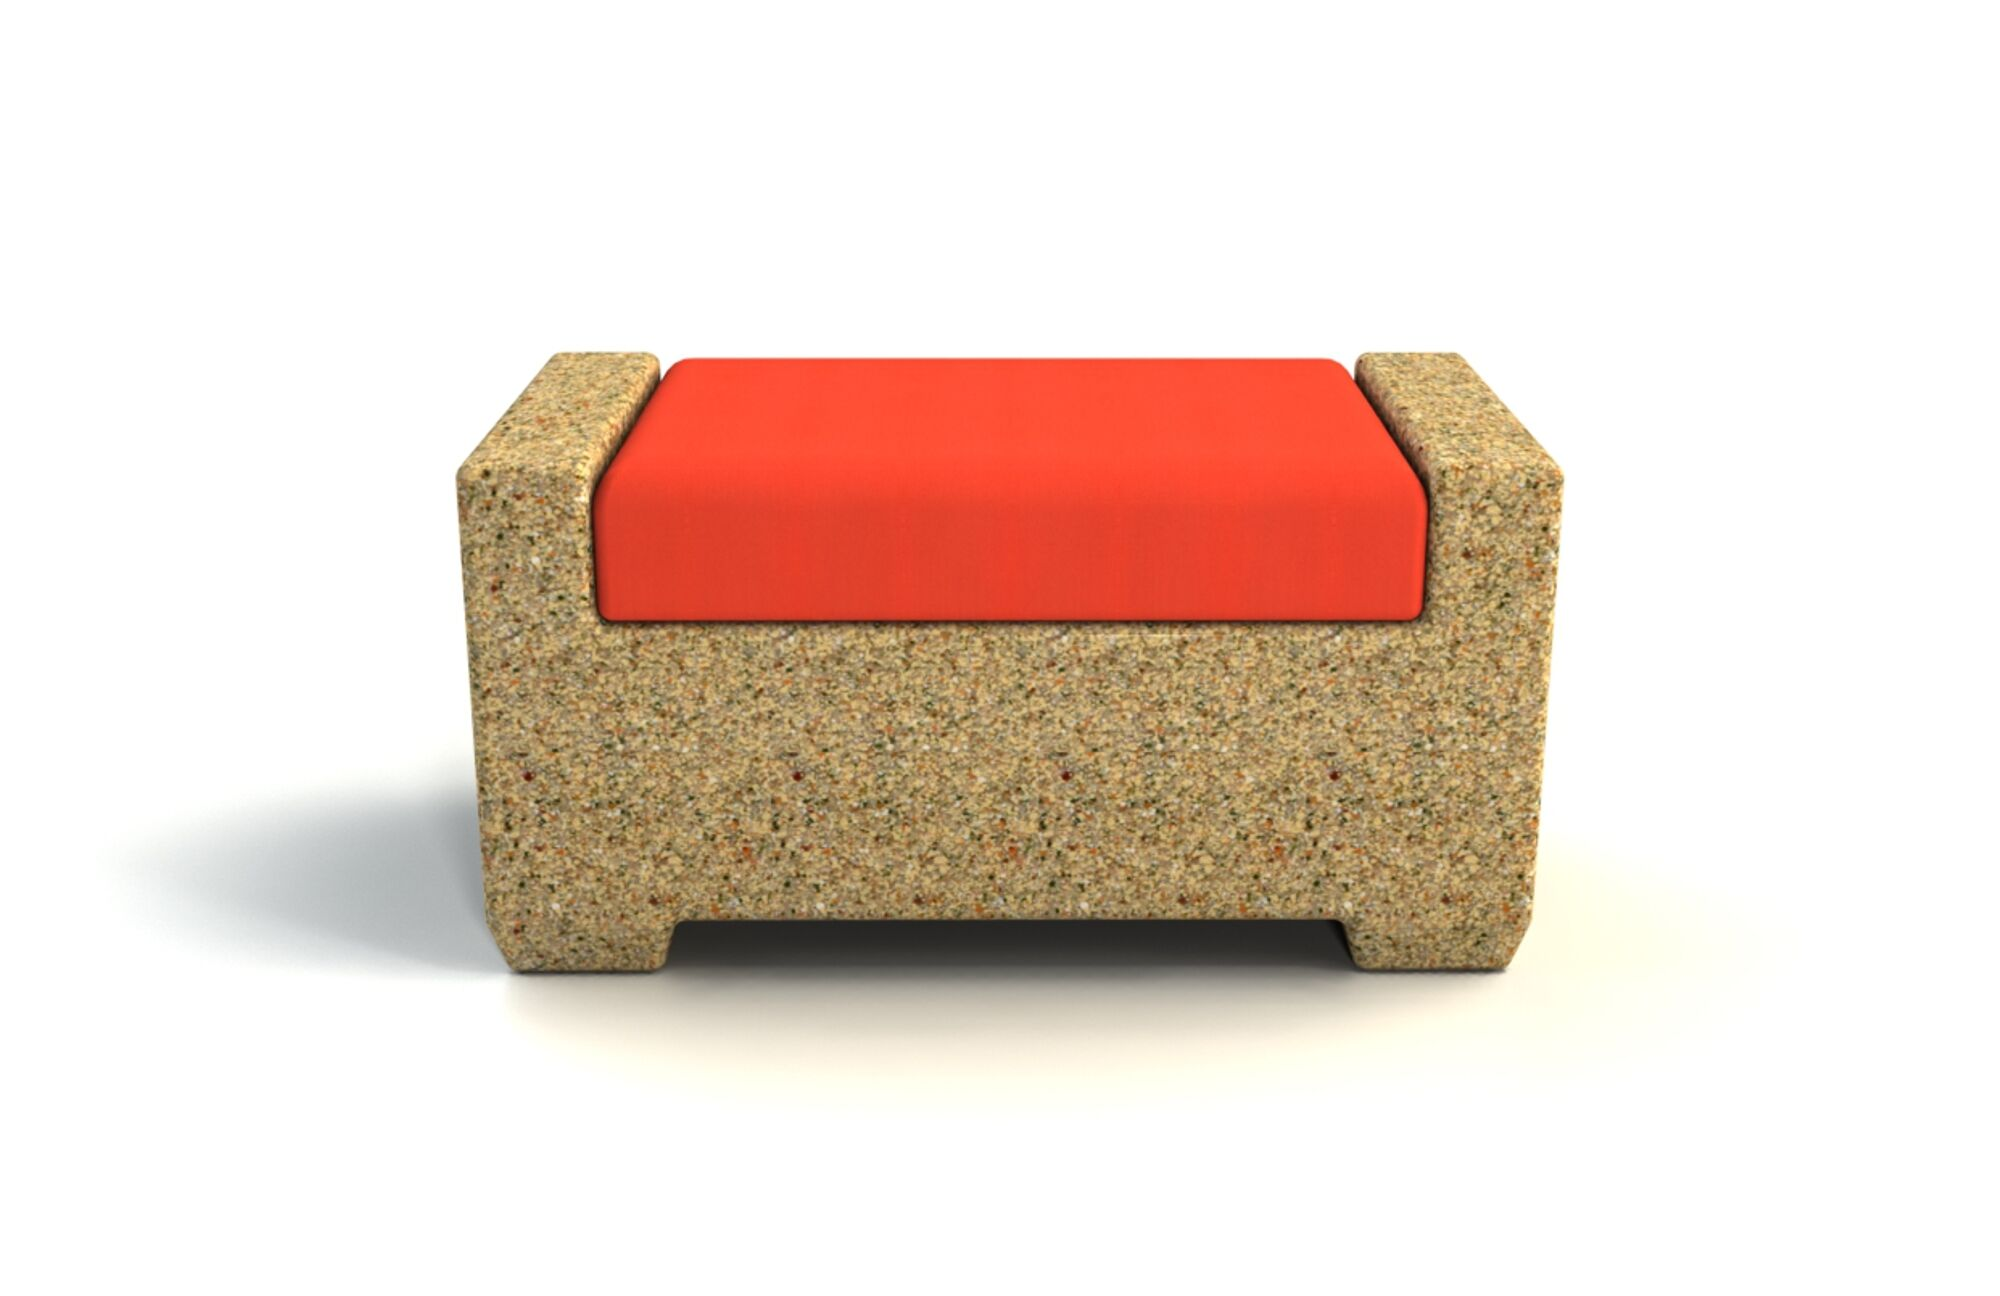 Sturtevant Ottoman with Cushion Cushion Color: Coral, Frame Color: Sandstone